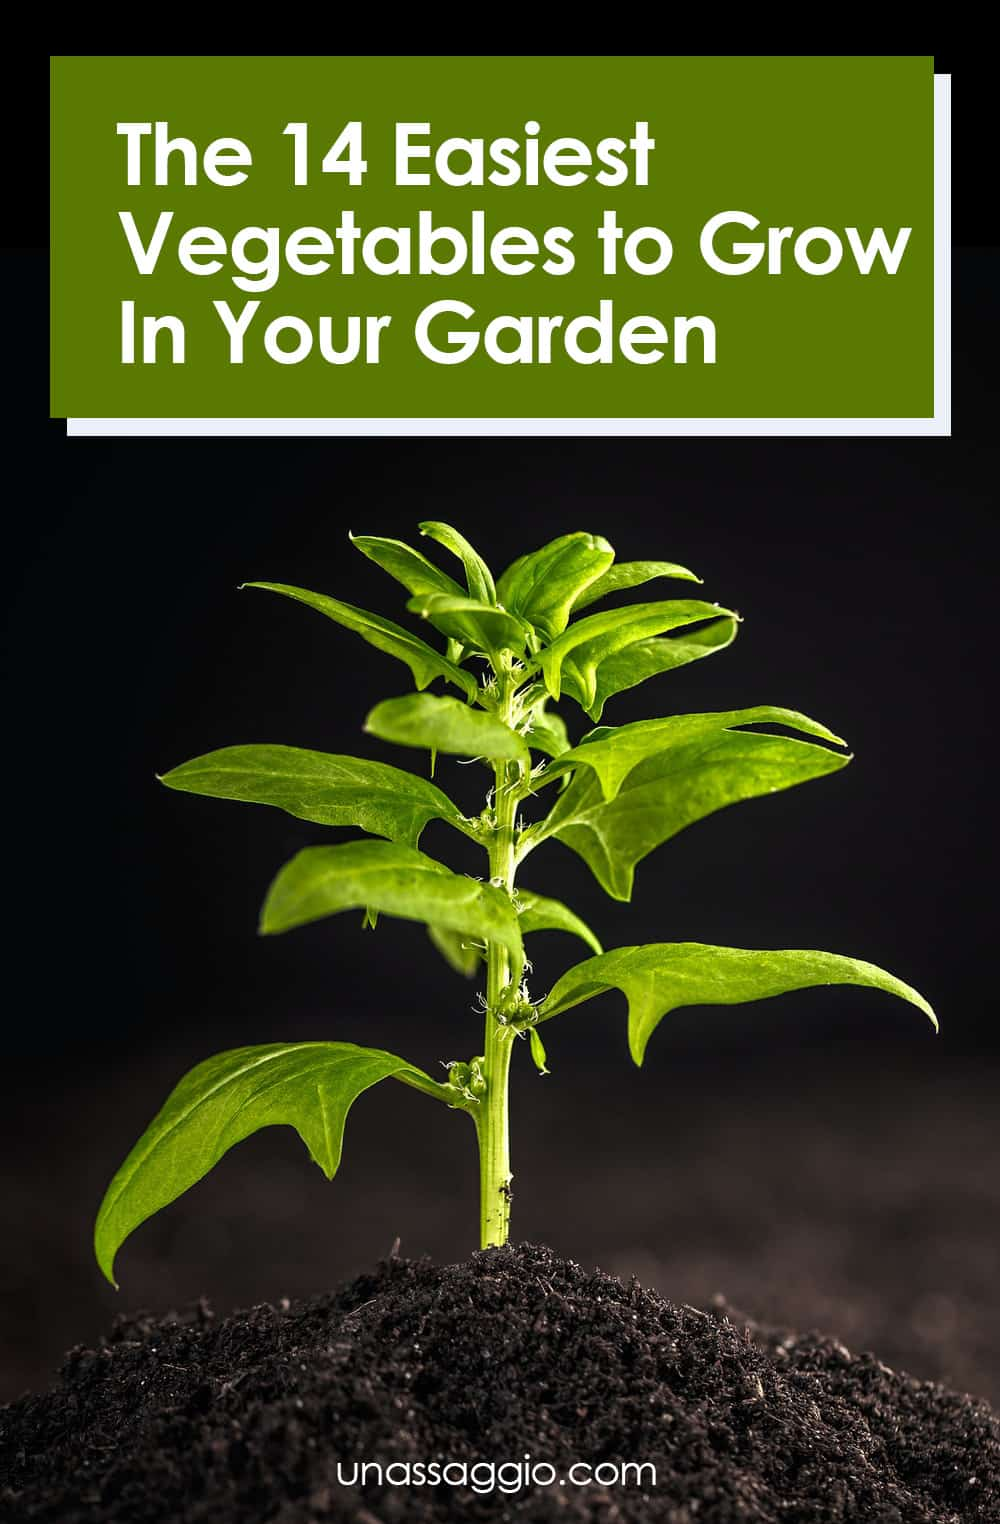 The 14 Easiest Vegetables to Grow In Your Garden